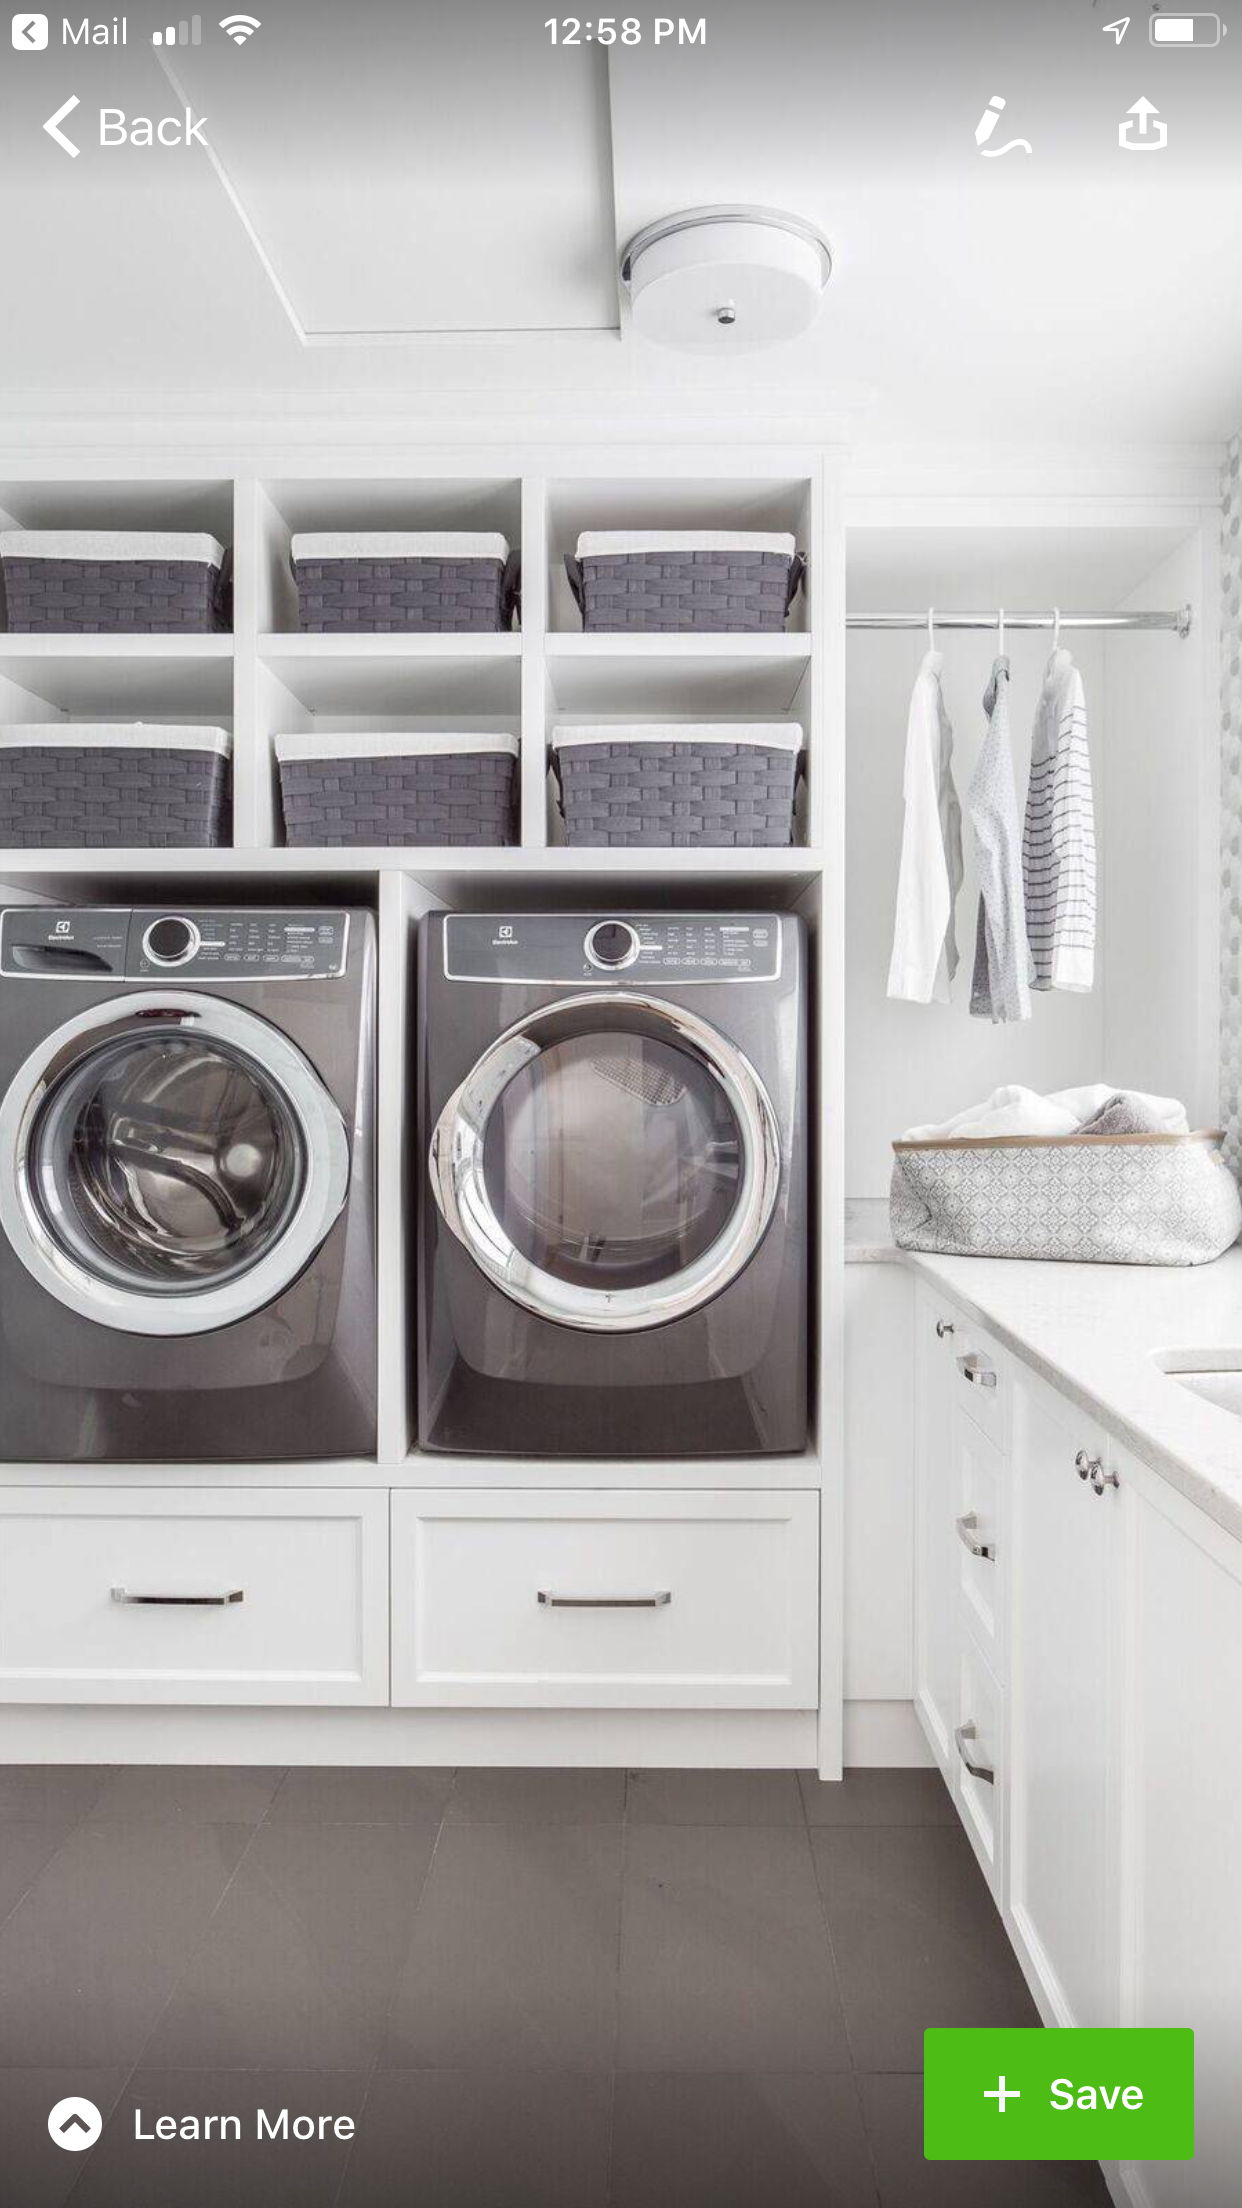 Pin By Sarah Steinhauser On Laundry Room Laundry Room Diy Diy Laundry Room Storage Laundry Room Design